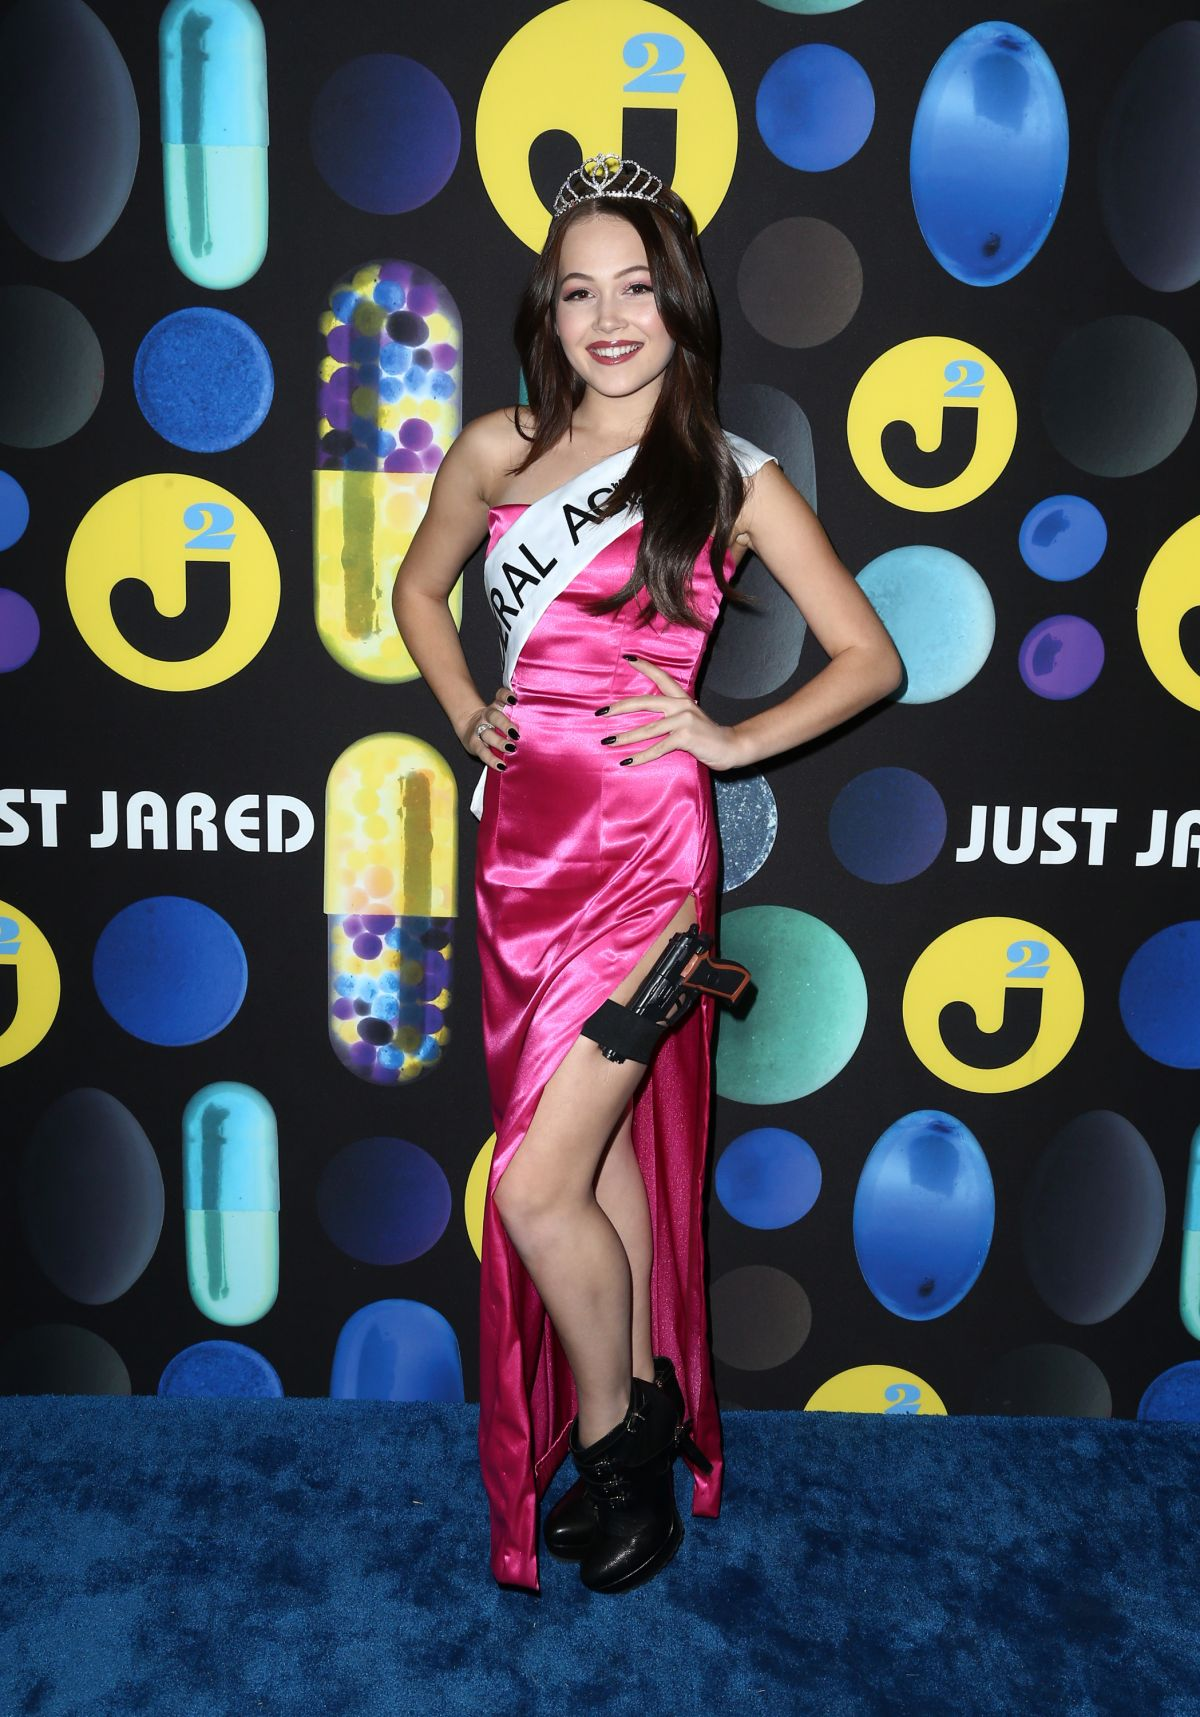 kelli berglund at just jared halloween party in hollywood 10312015 - Halloween Parties In Hollywood